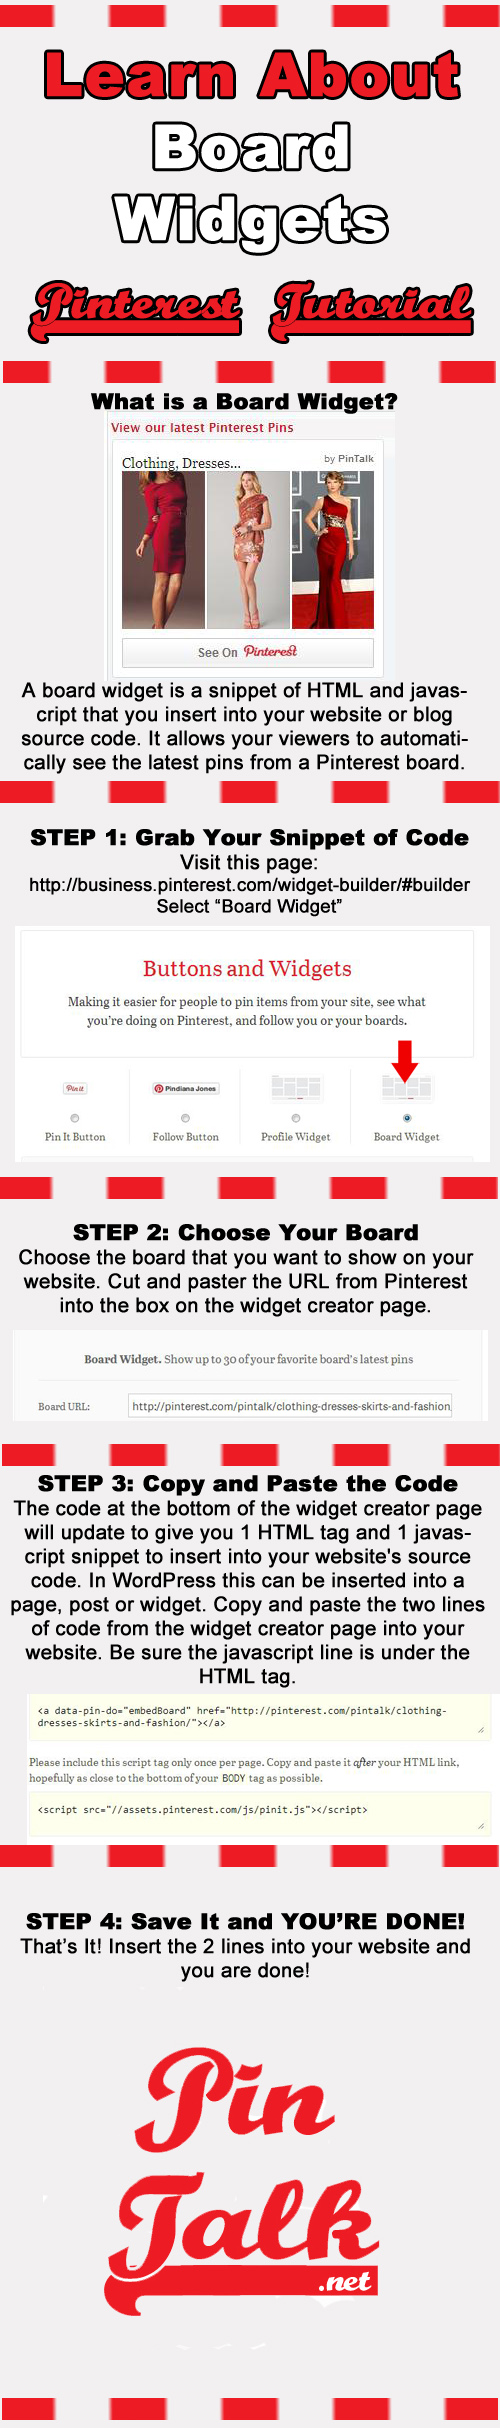 Tutorial Pinterest Board Widgets